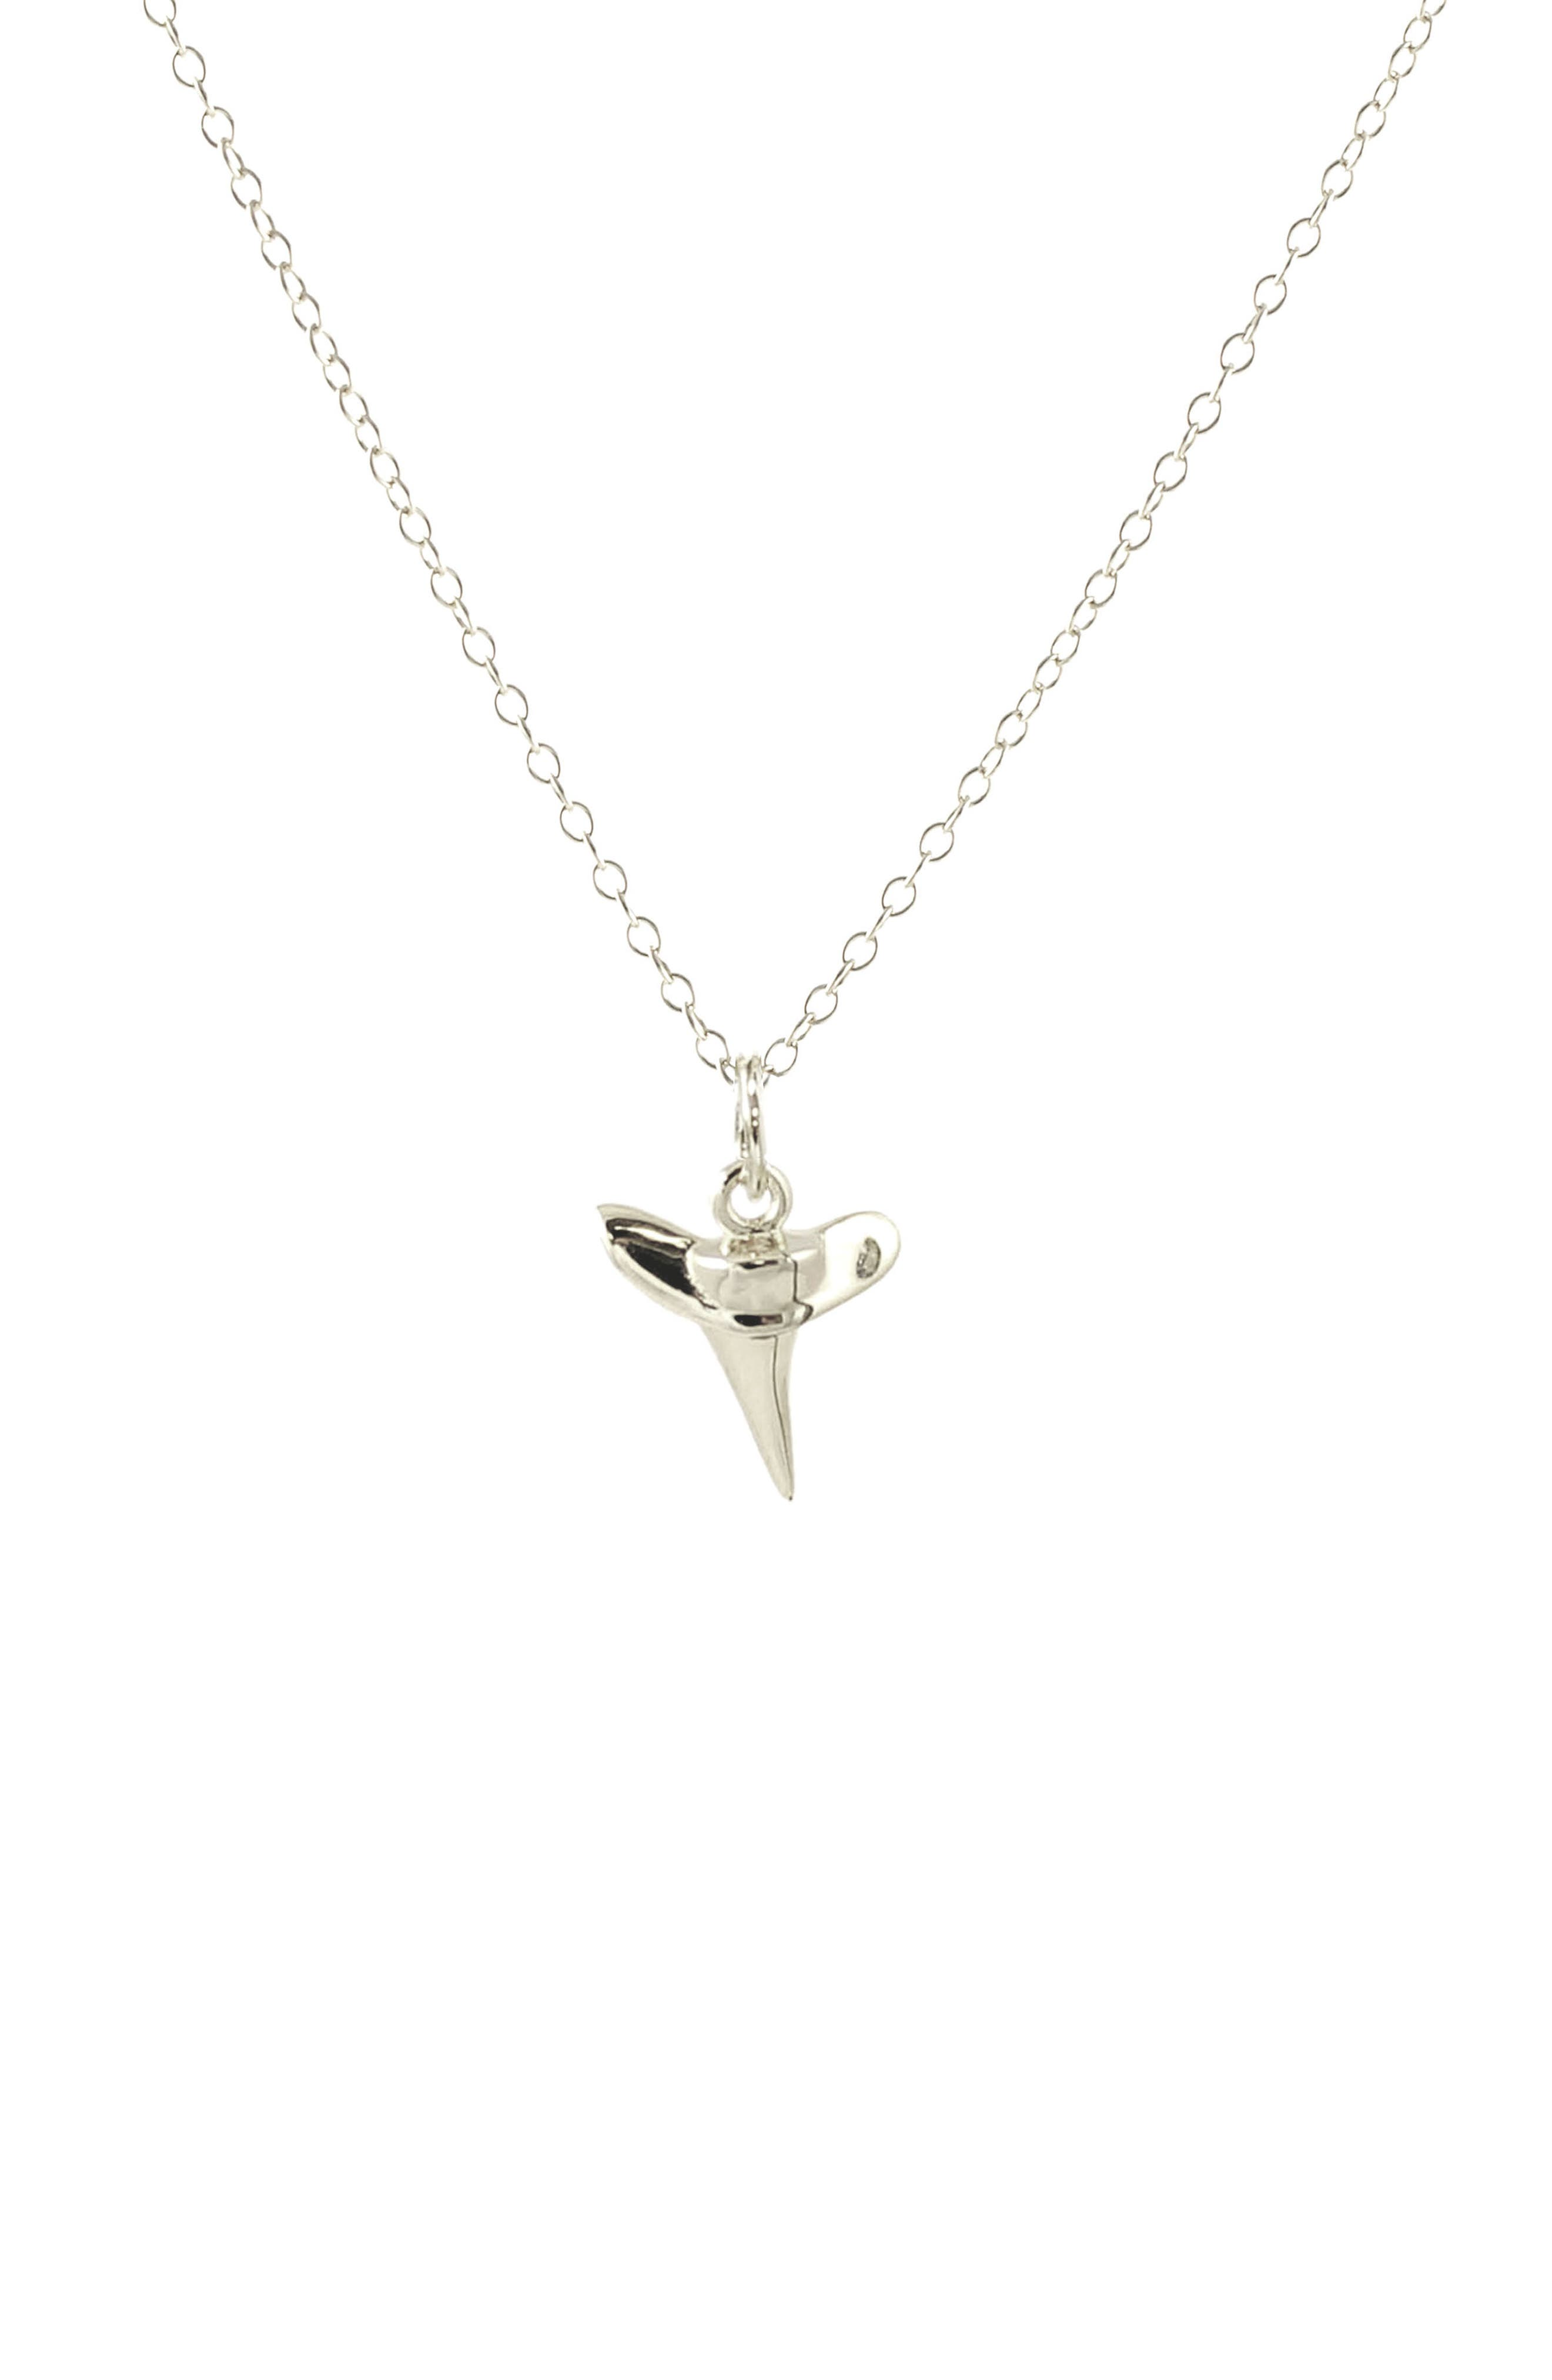 Shark Tooth Pendant Necklace,                             Main thumbnail 1, color,                             Silver